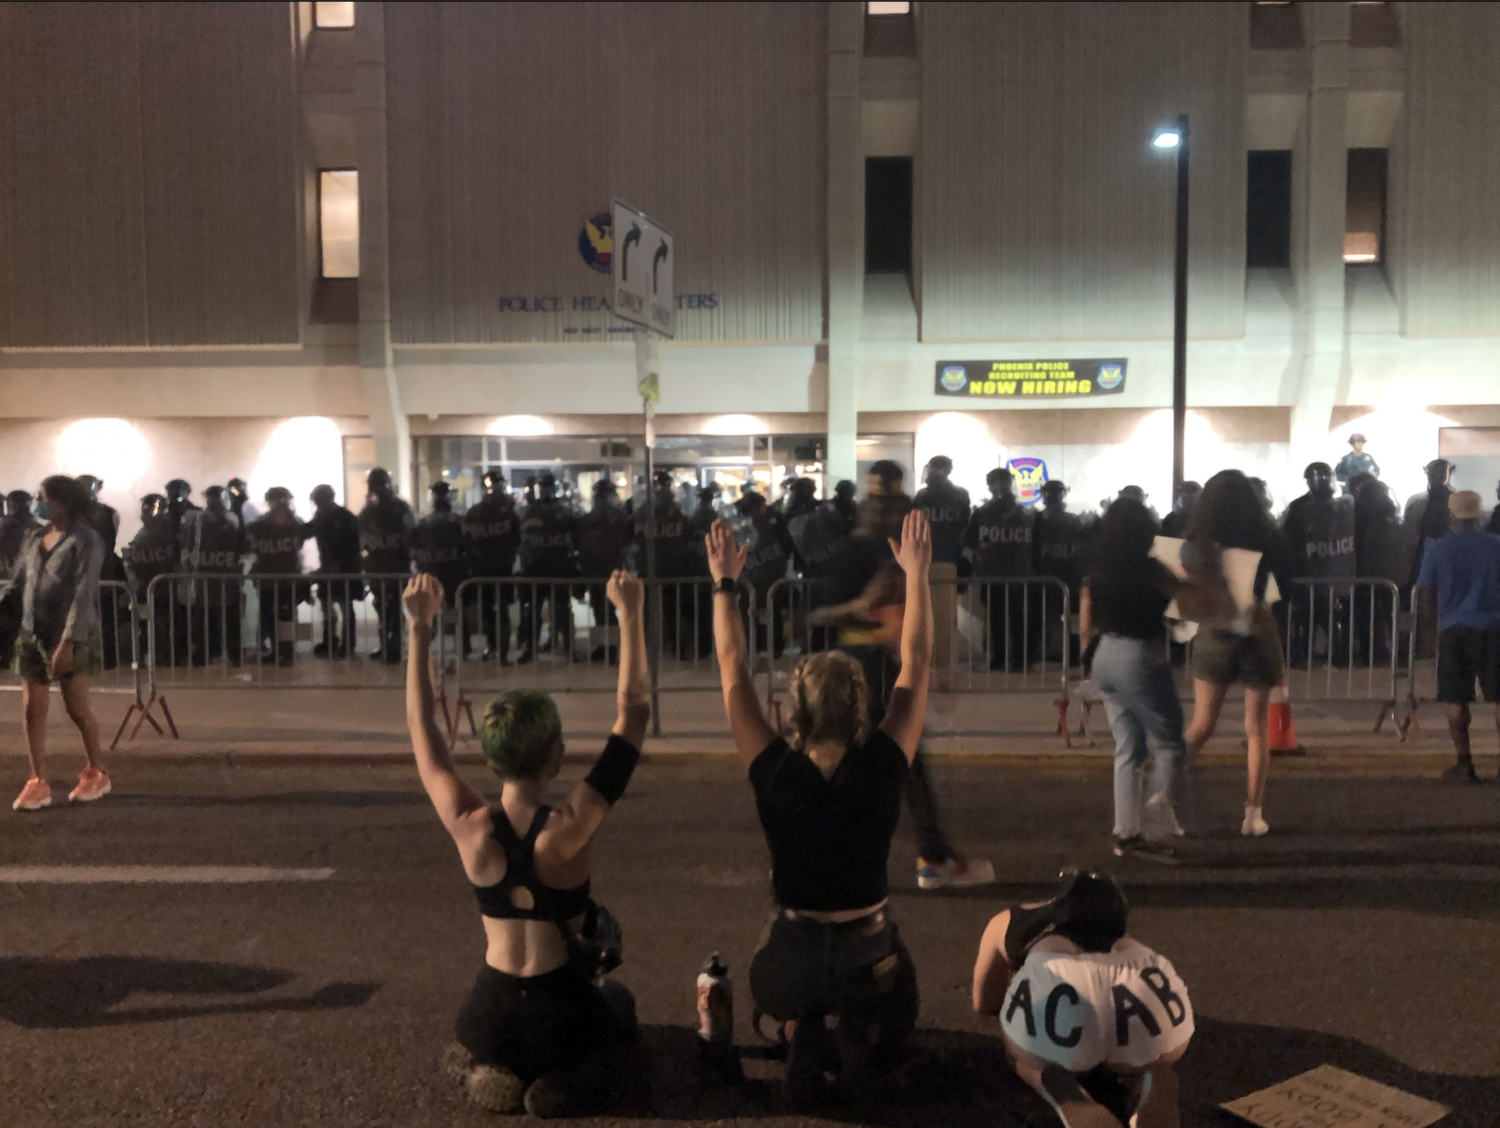 Protesters kneel with their hands in the air in front of Phoenix Police headquarters.